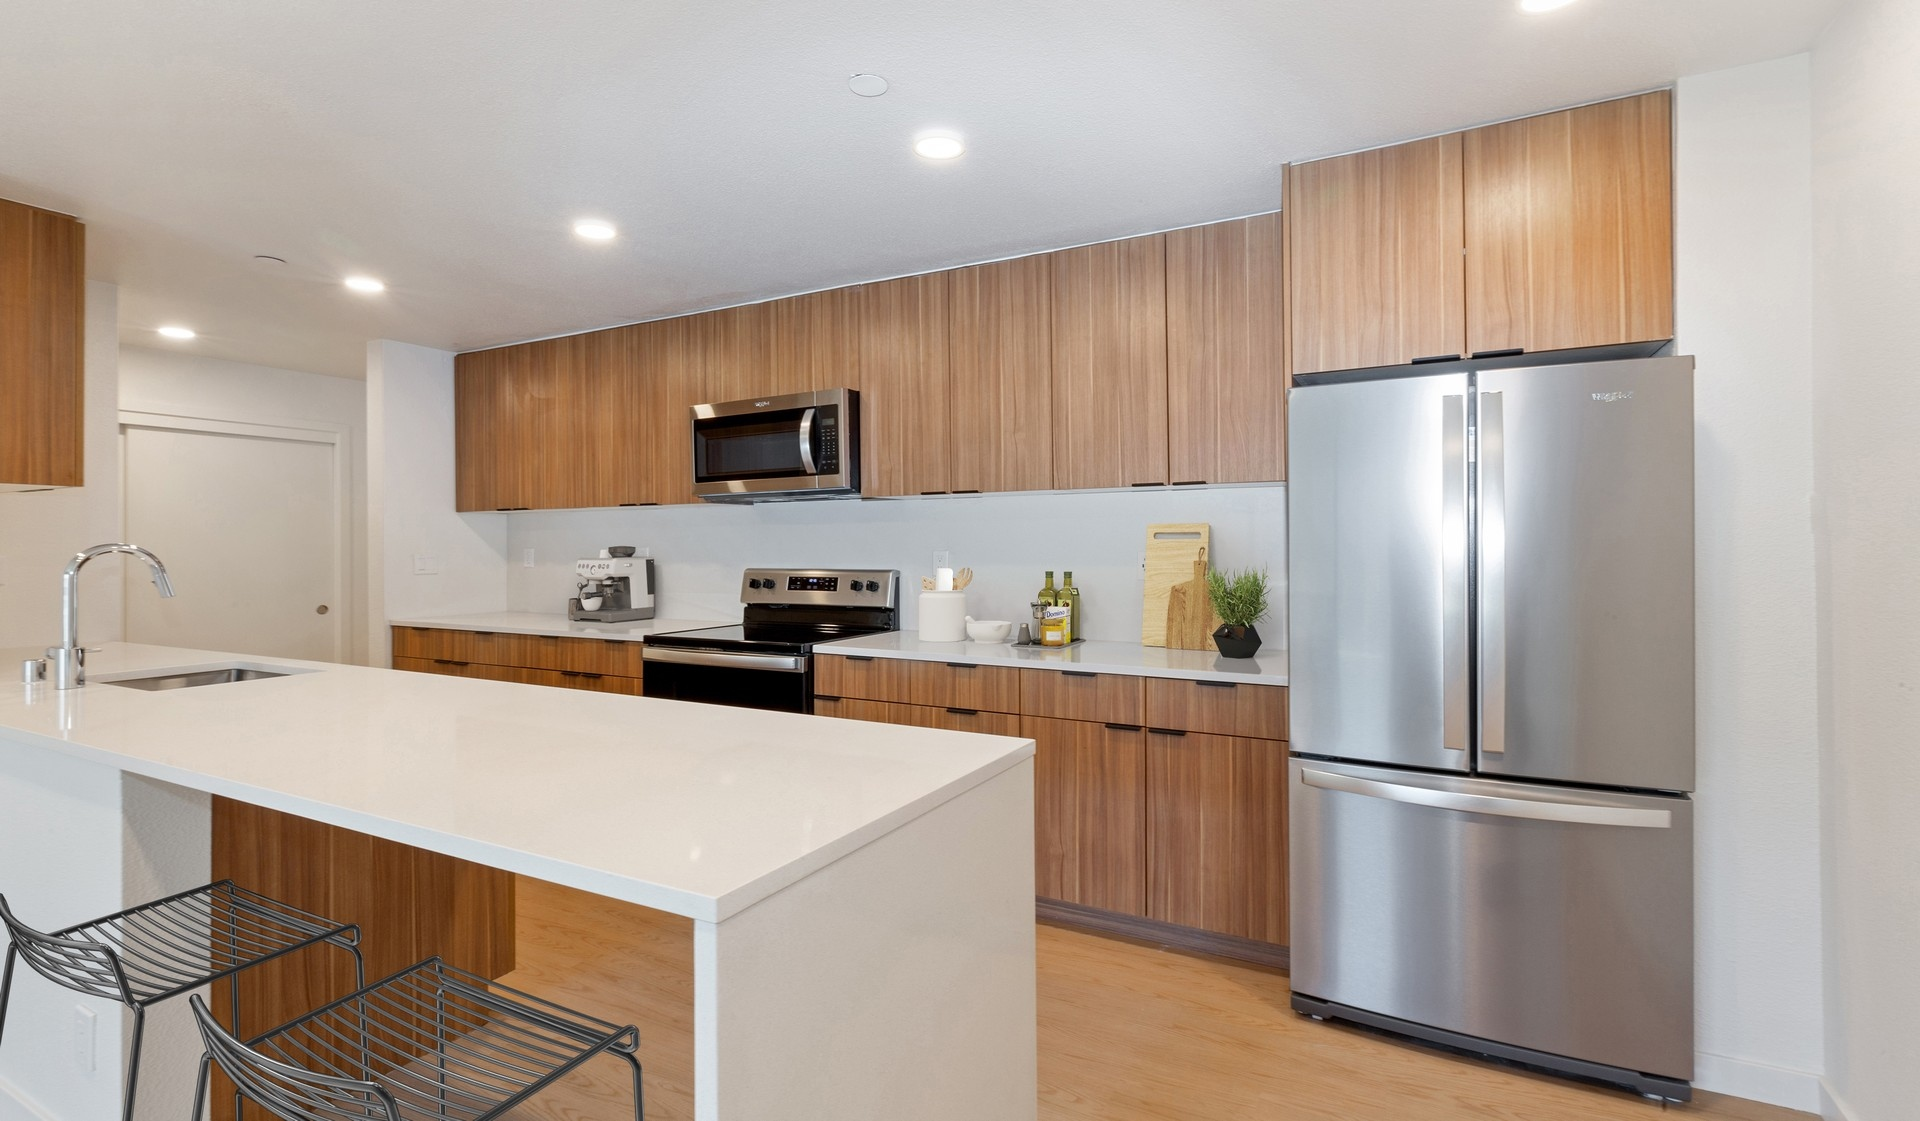 707 Leahy Apartments in Redwood City, CA - kitchen